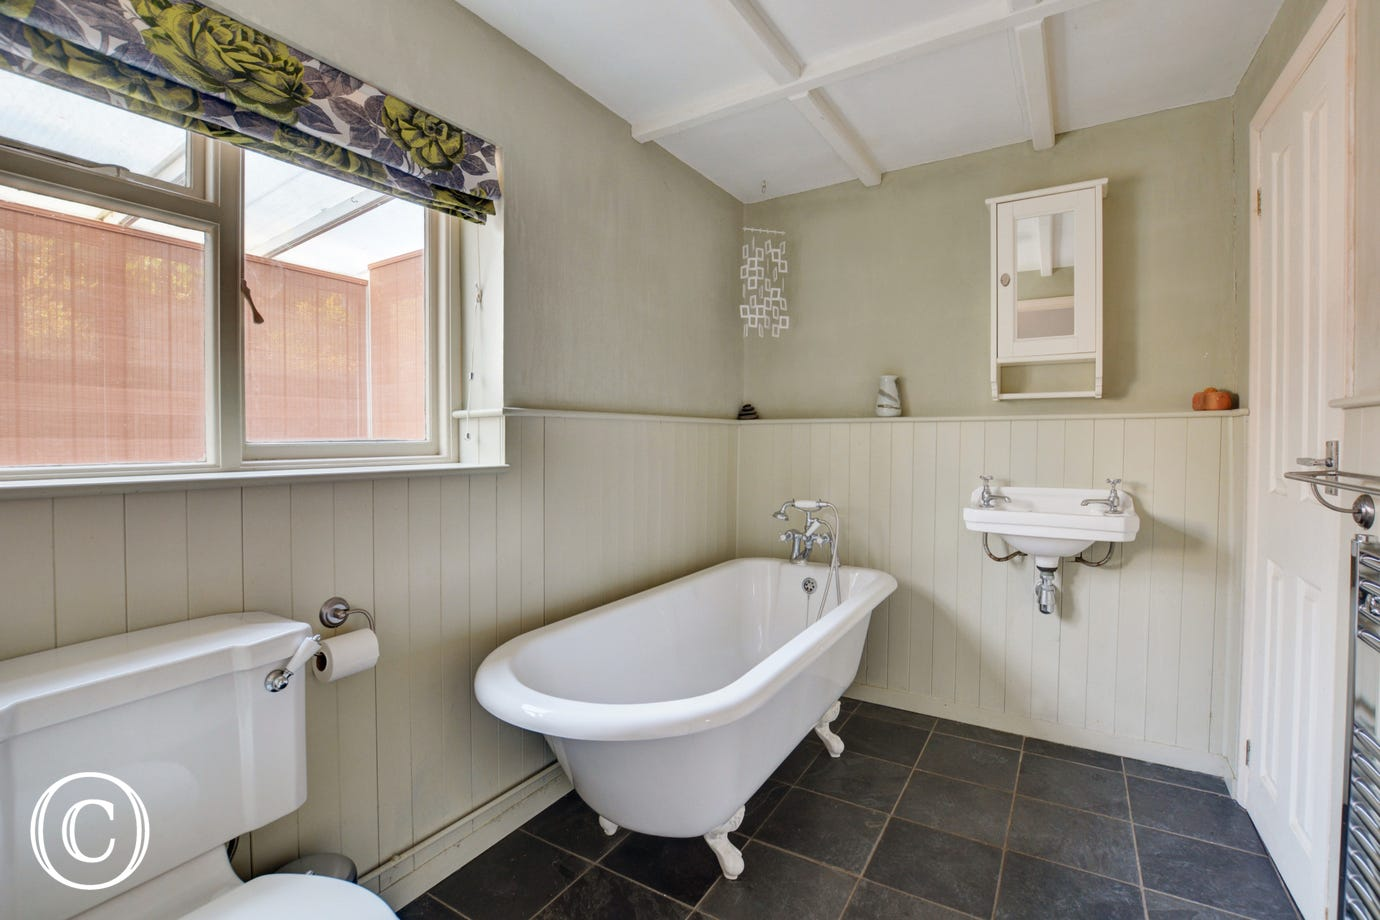 Bathroom with roll top bath, washbasin and wc